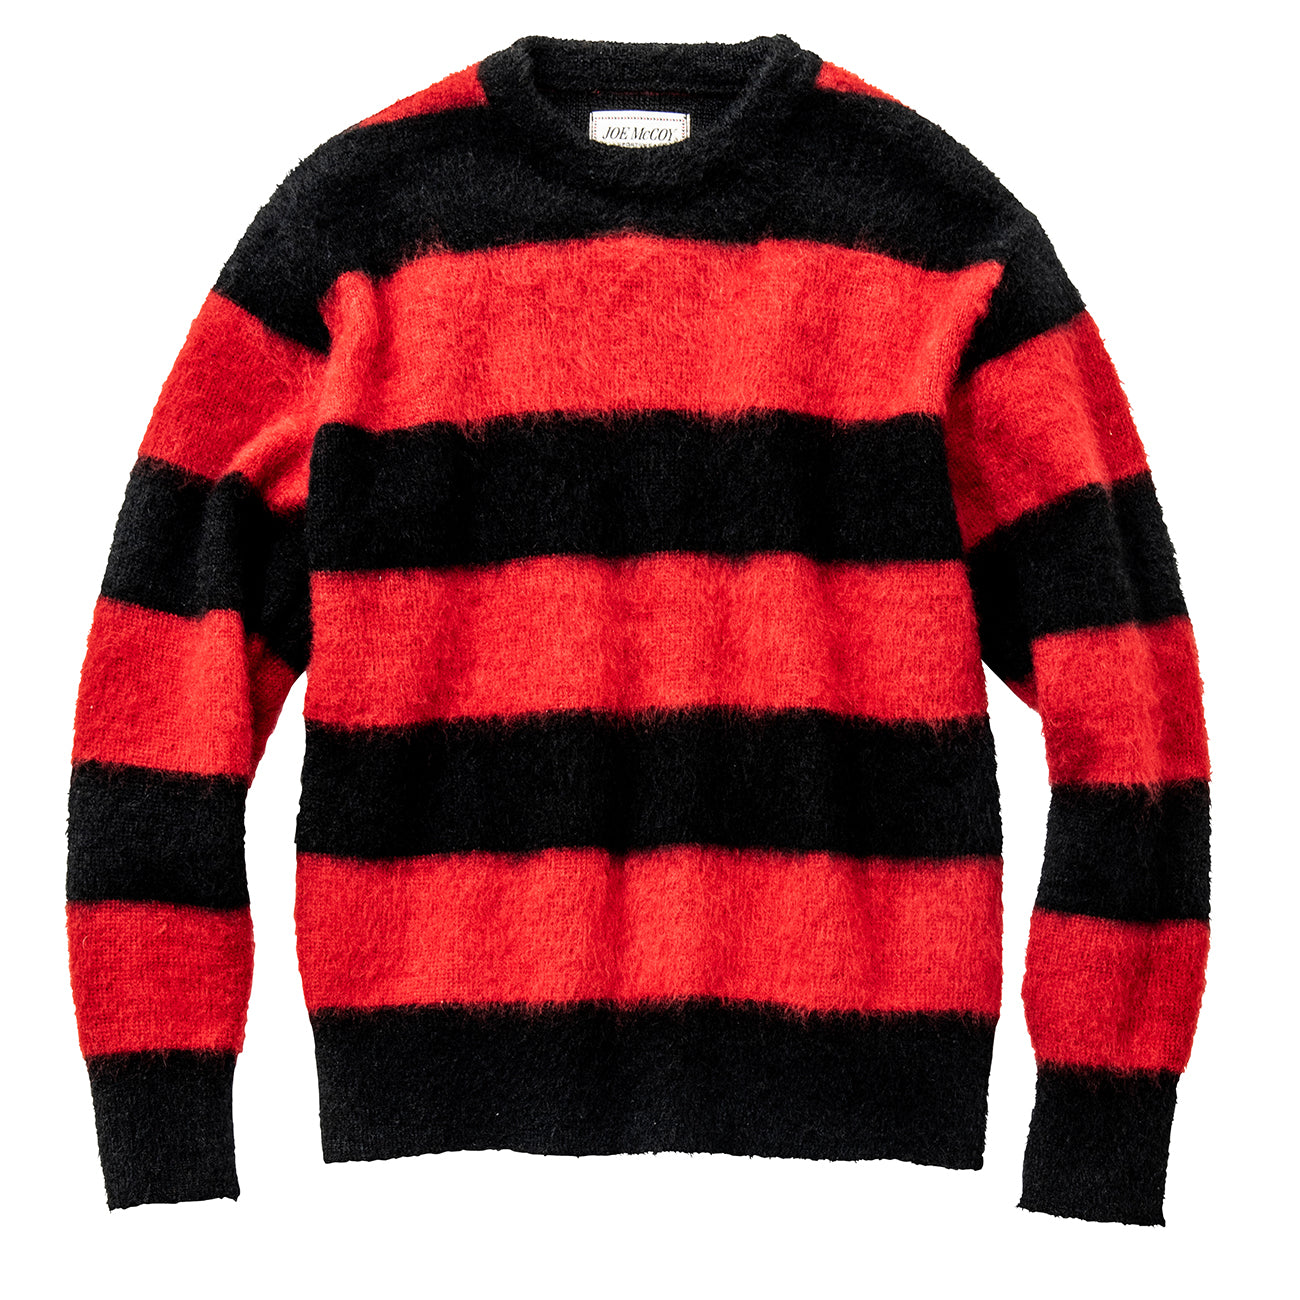 Joe McCoy Mohair Stripe Sweater